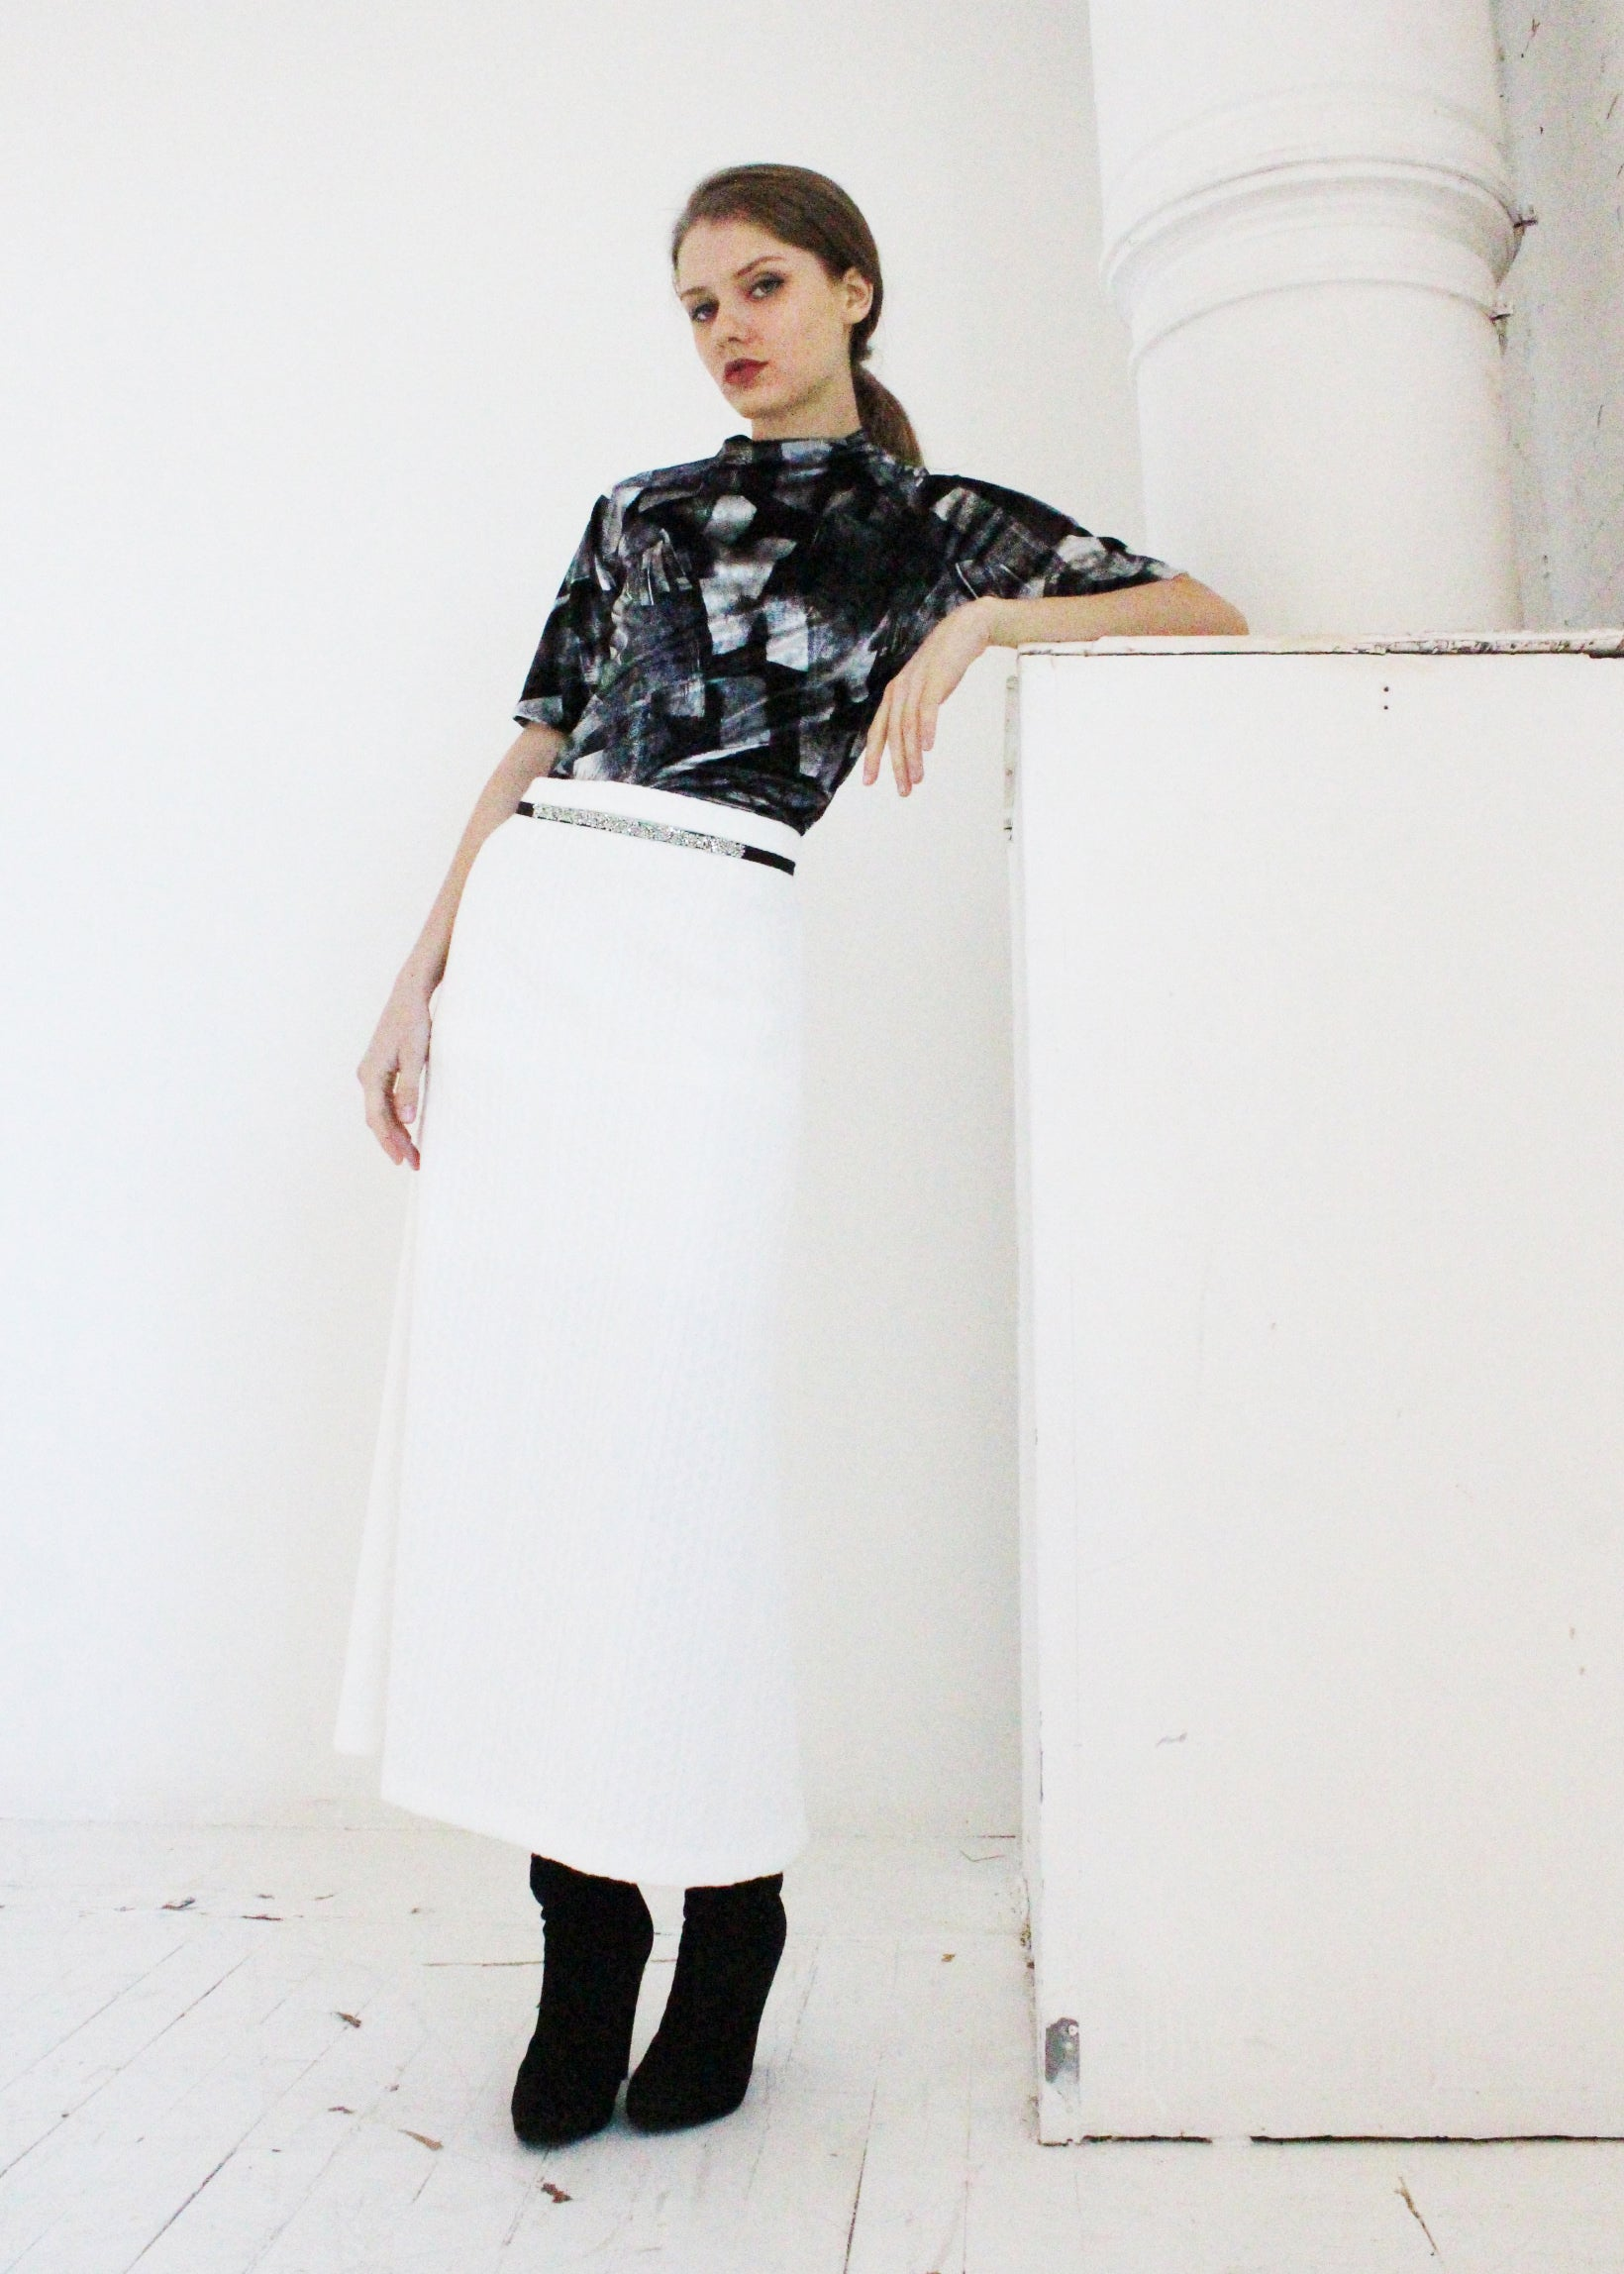 Ying Cai _ AW 21 Look 8 - 9